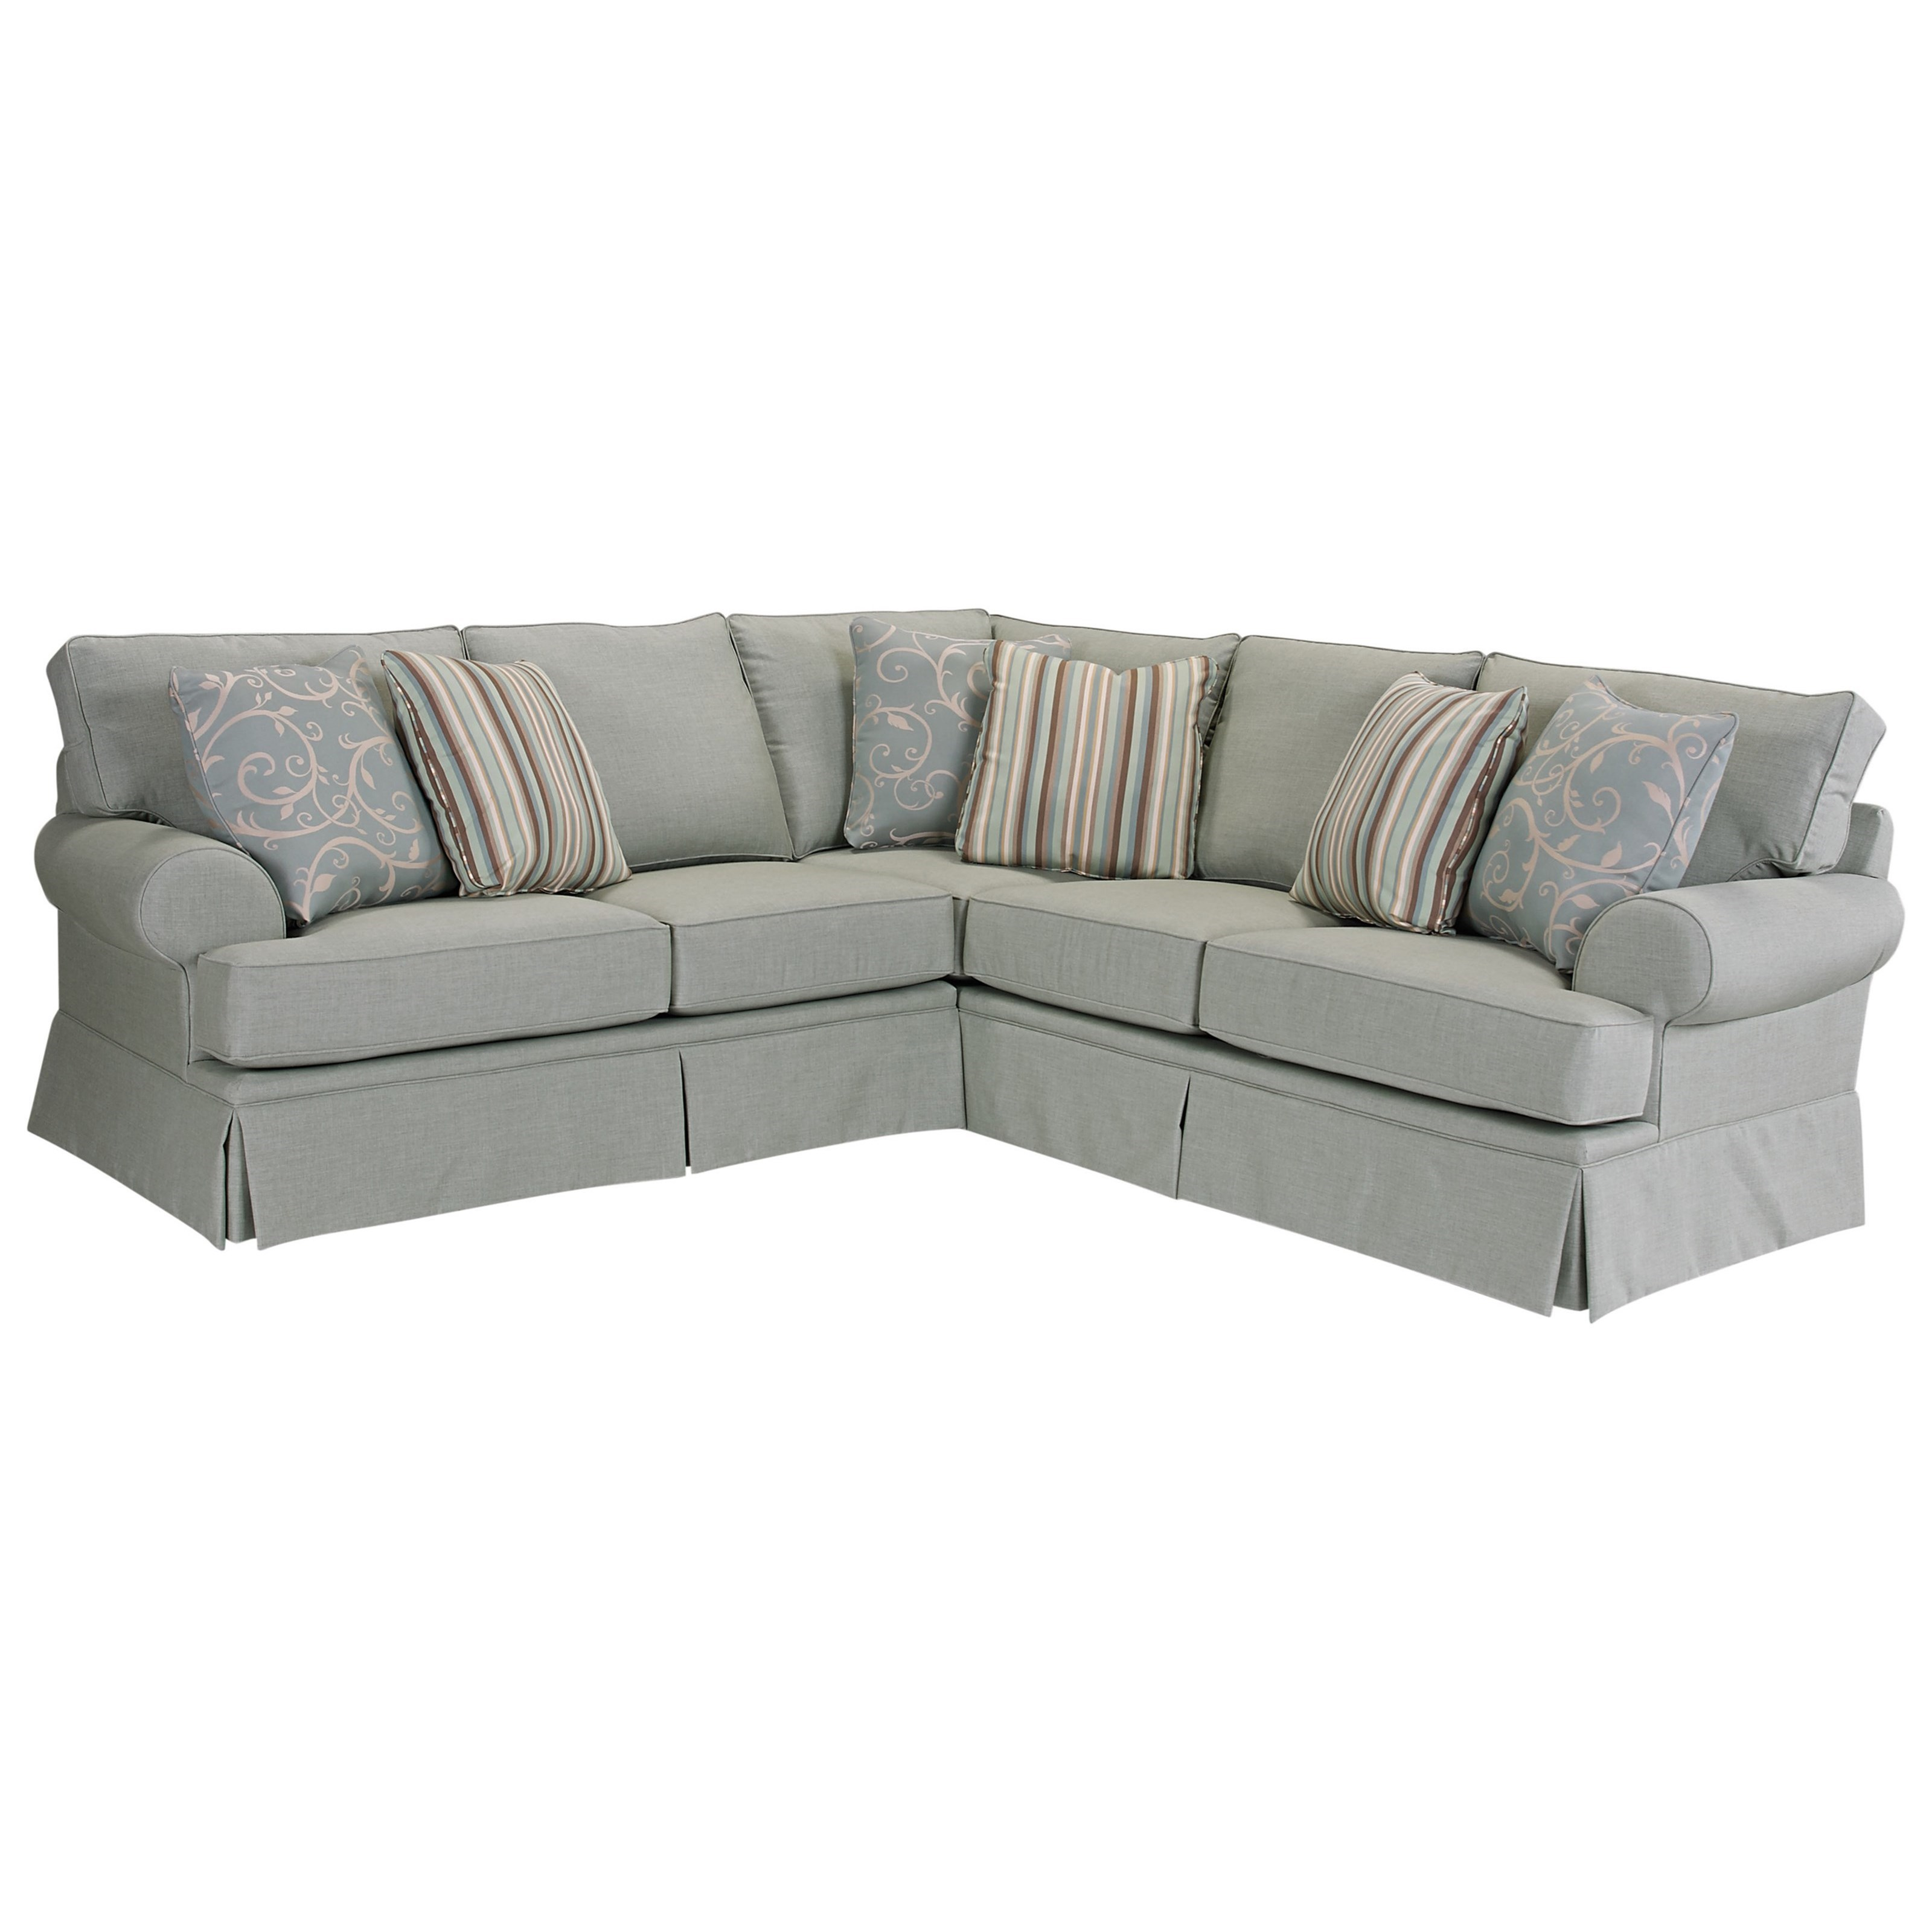 Merveilleux Broyhill Furniture Emily Transitional Sectional   Item Number:  S6263 2+3 40430